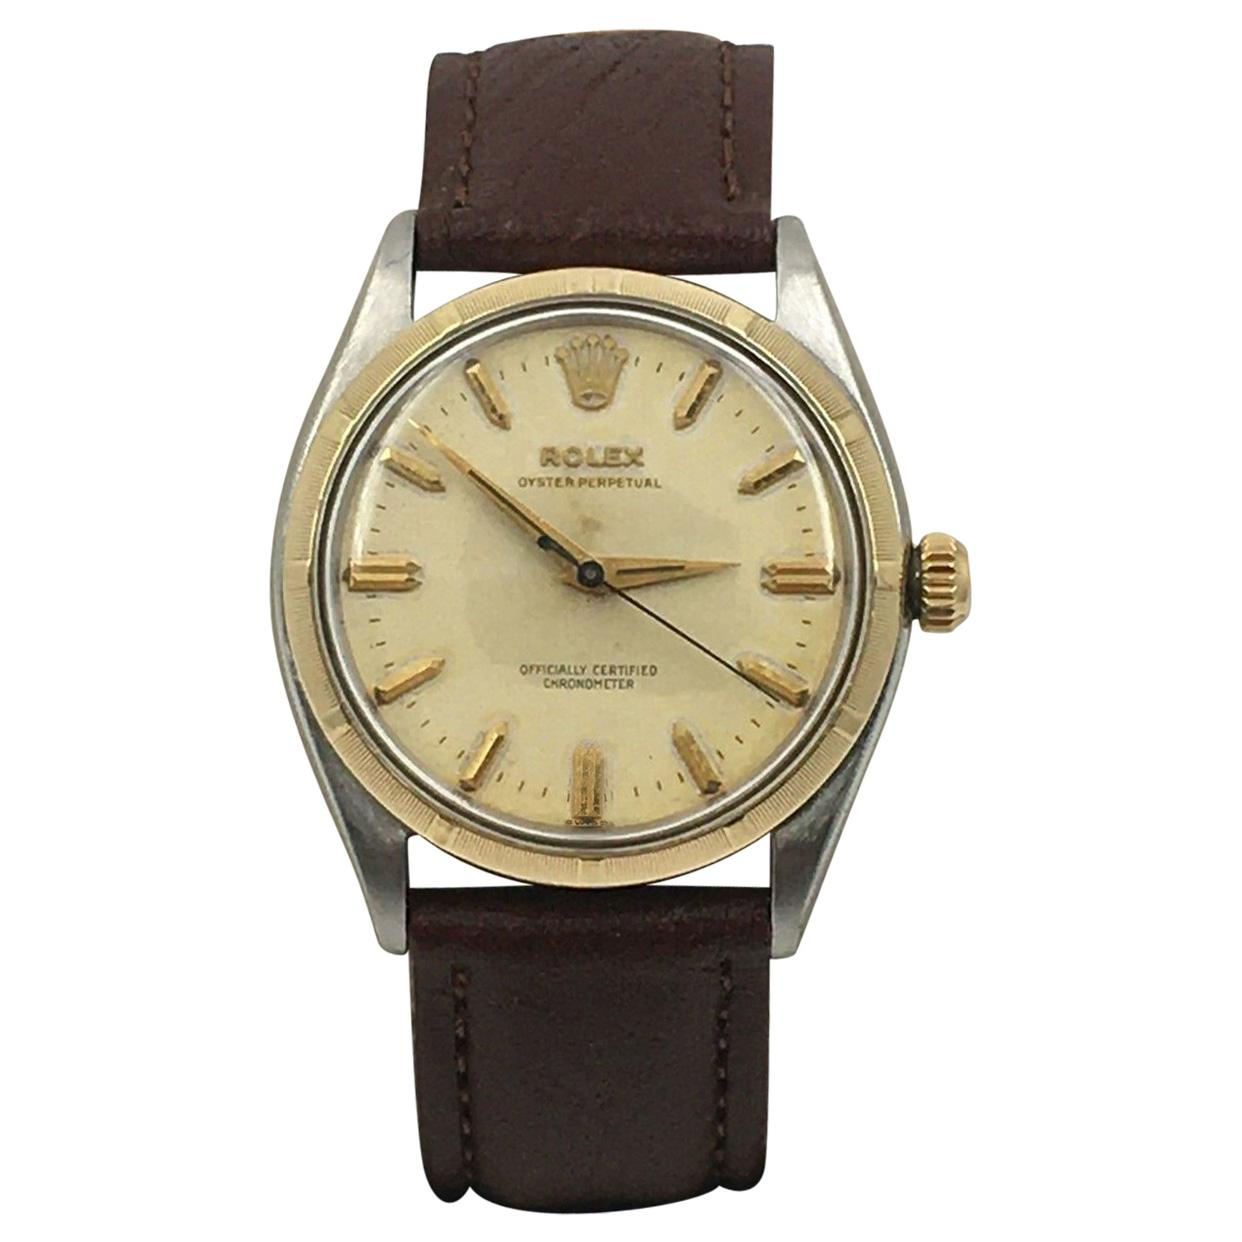 Rolex 6565 Oyster Perpetual 14 Karat Yellow Gold Stainless Steel